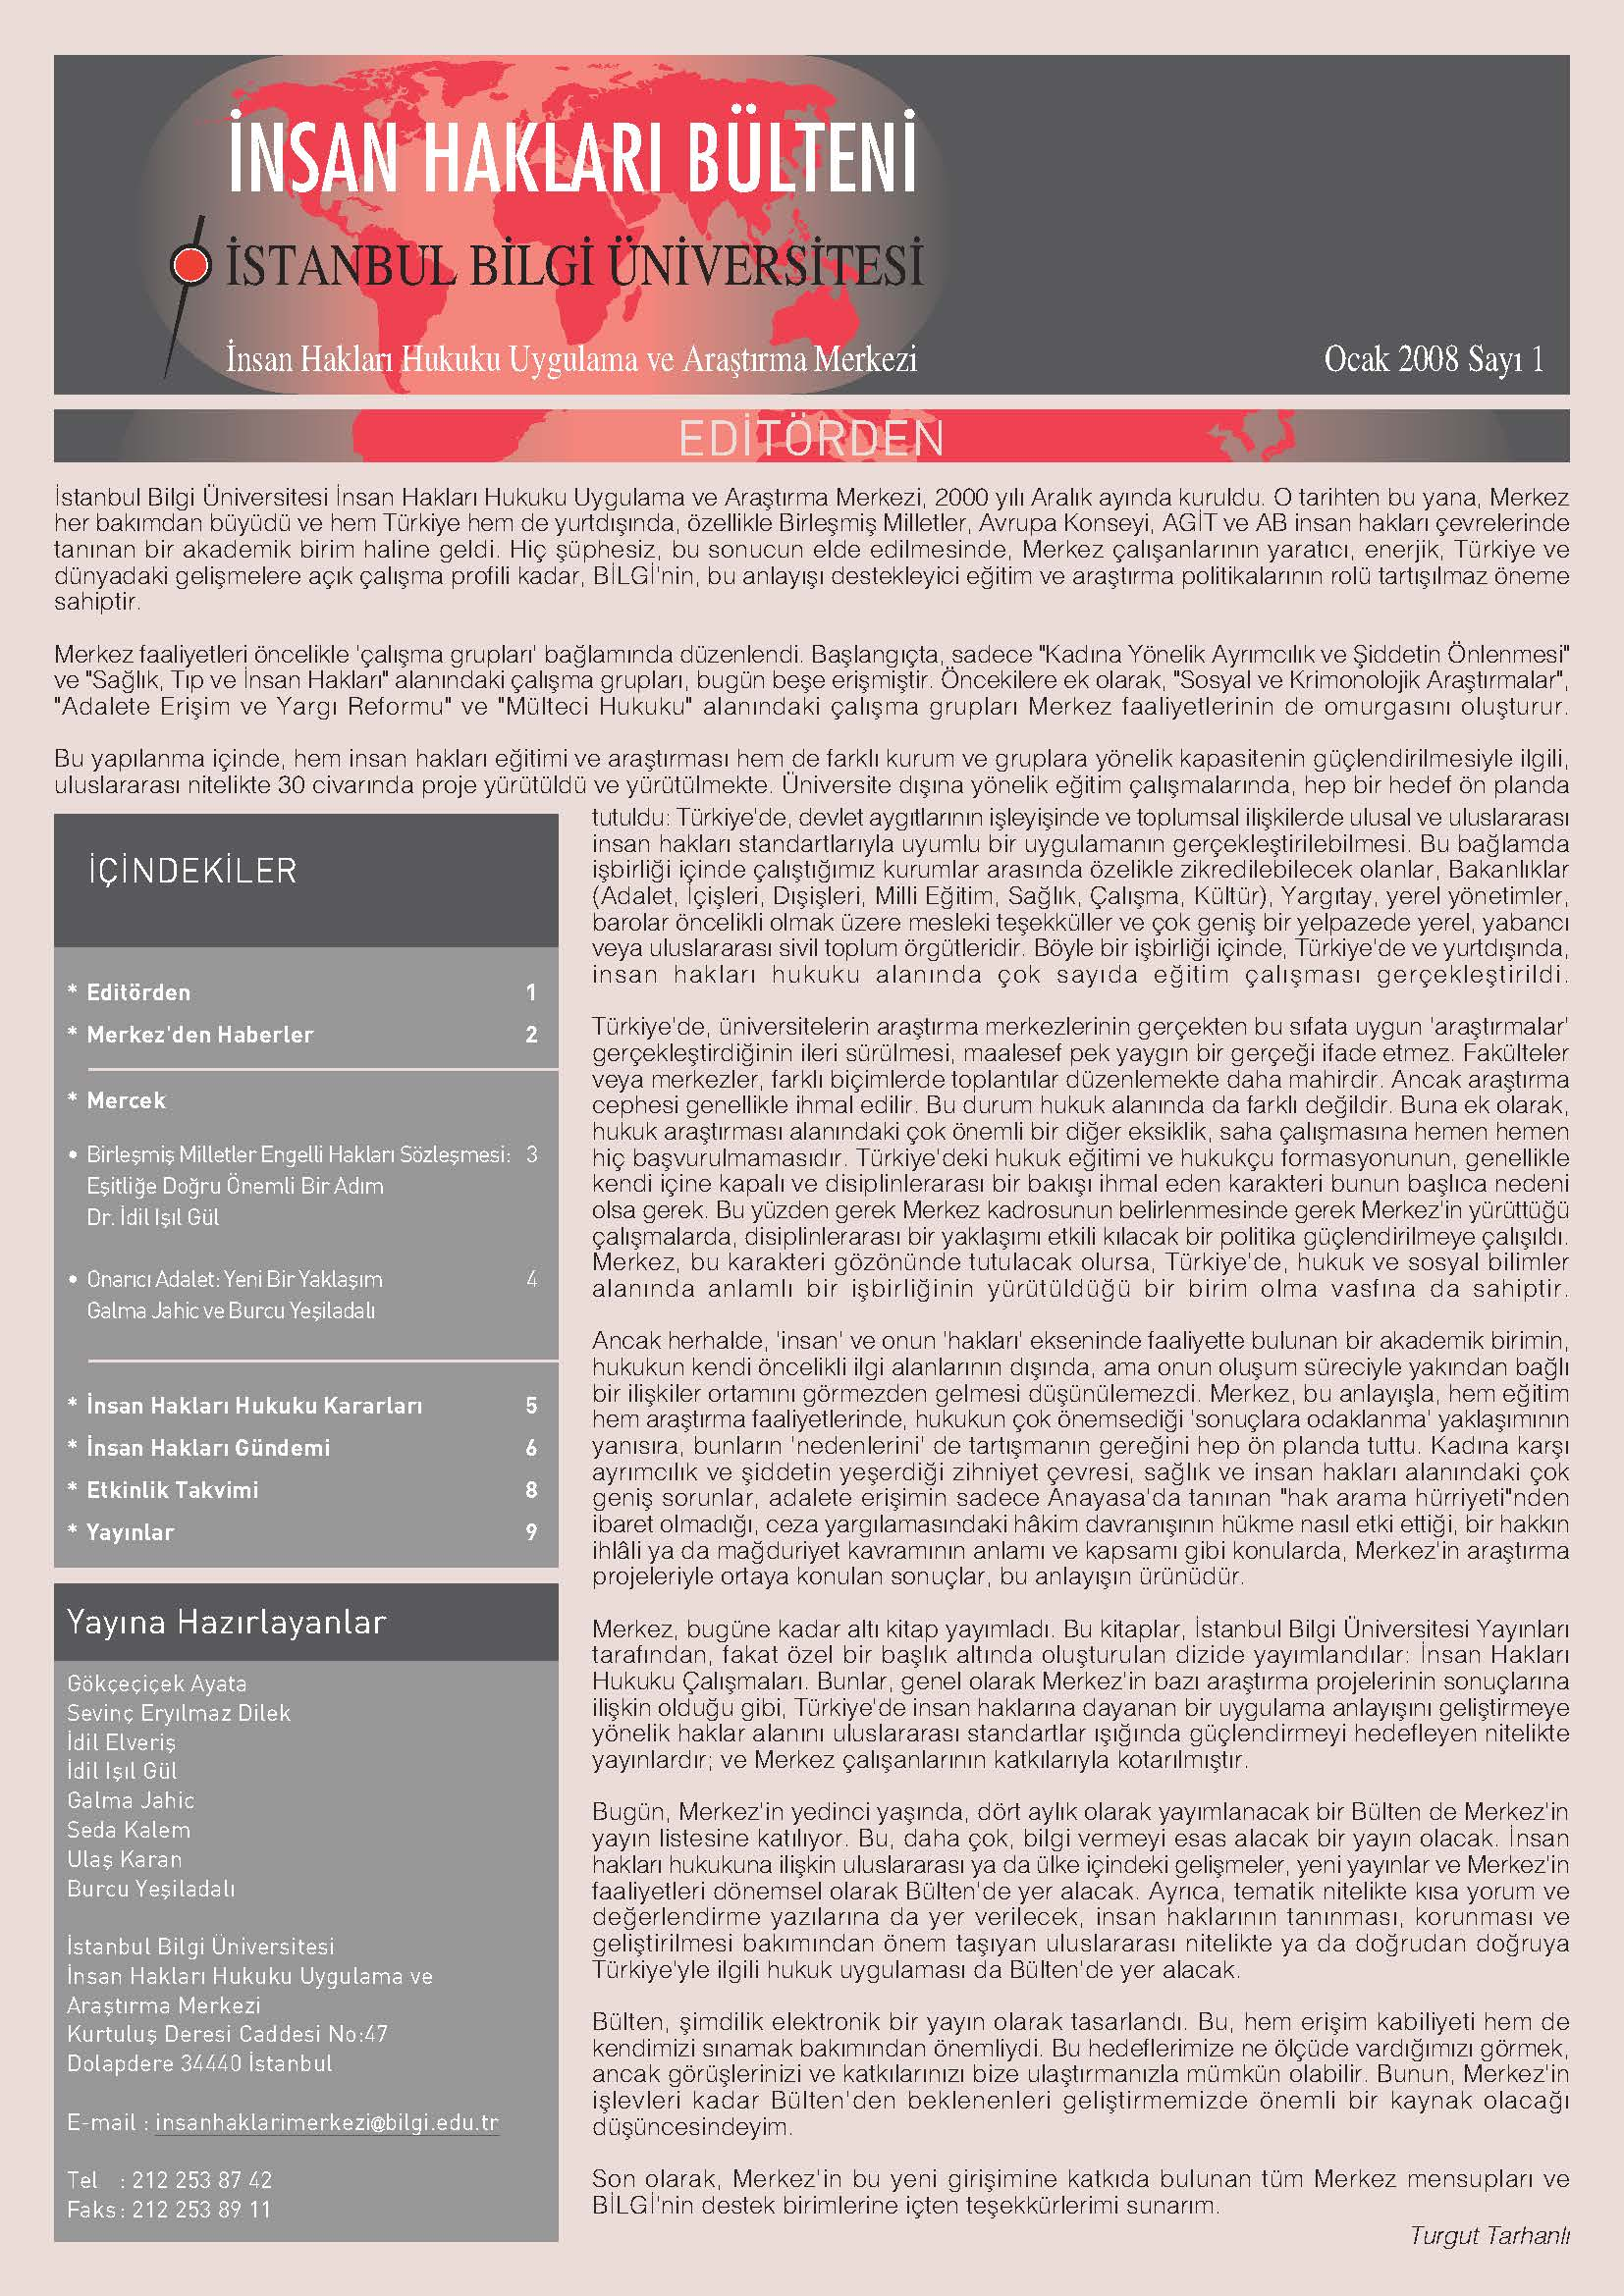 Human Rights Bulletin, January 2008, Issue 1